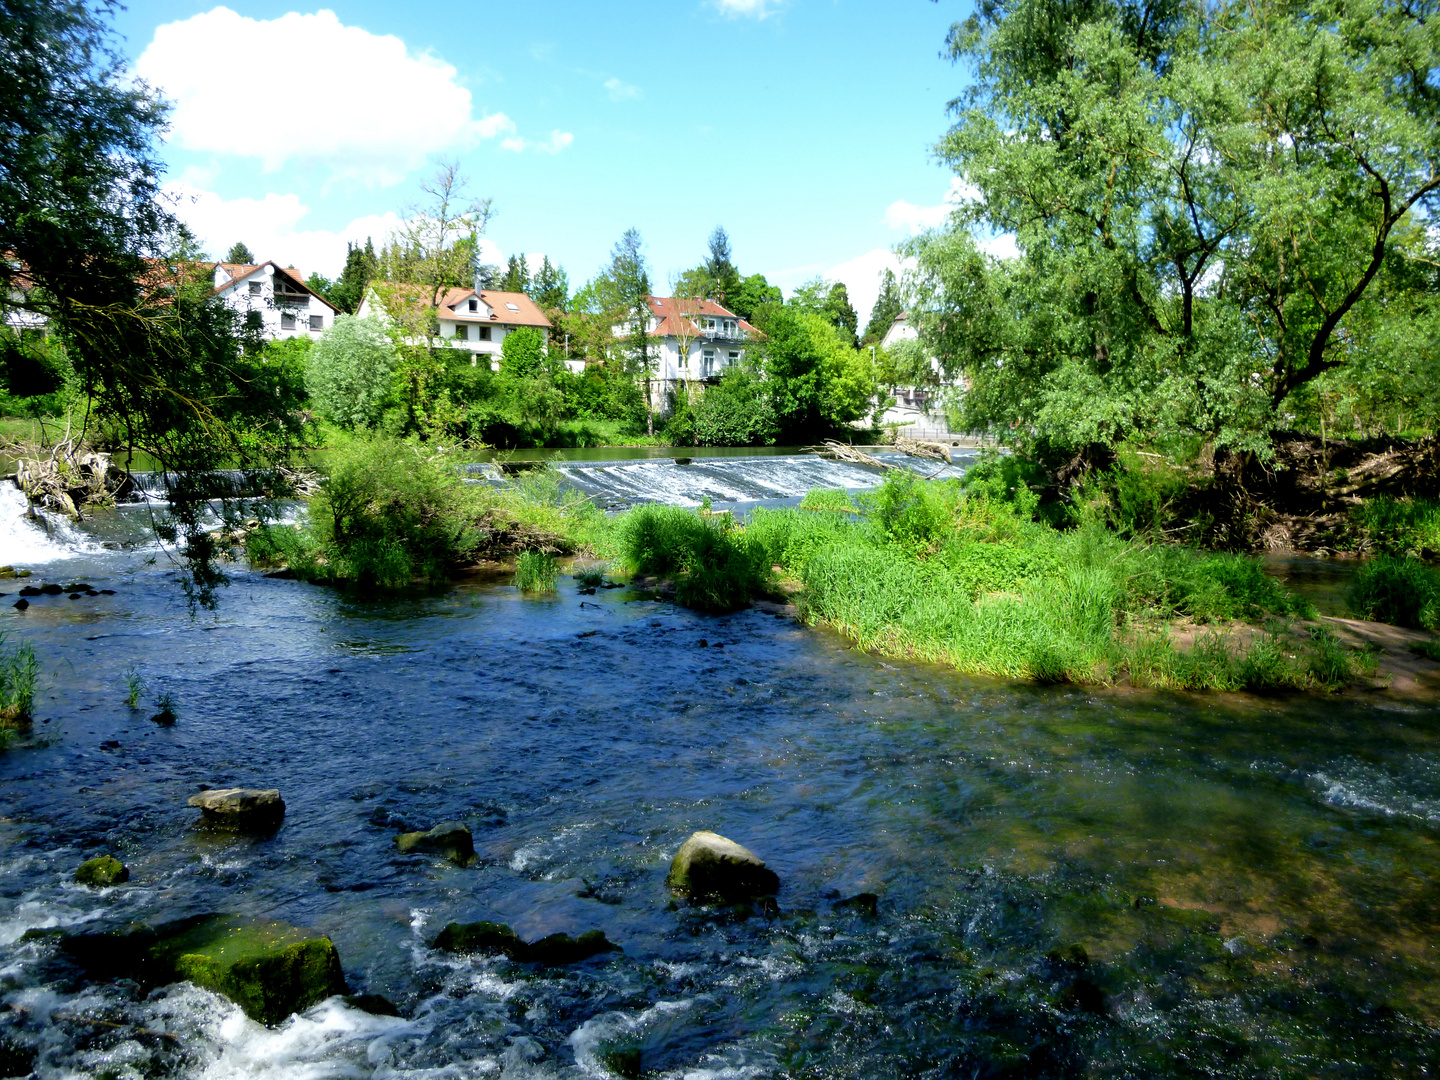 Naturlandschaft am Fluss